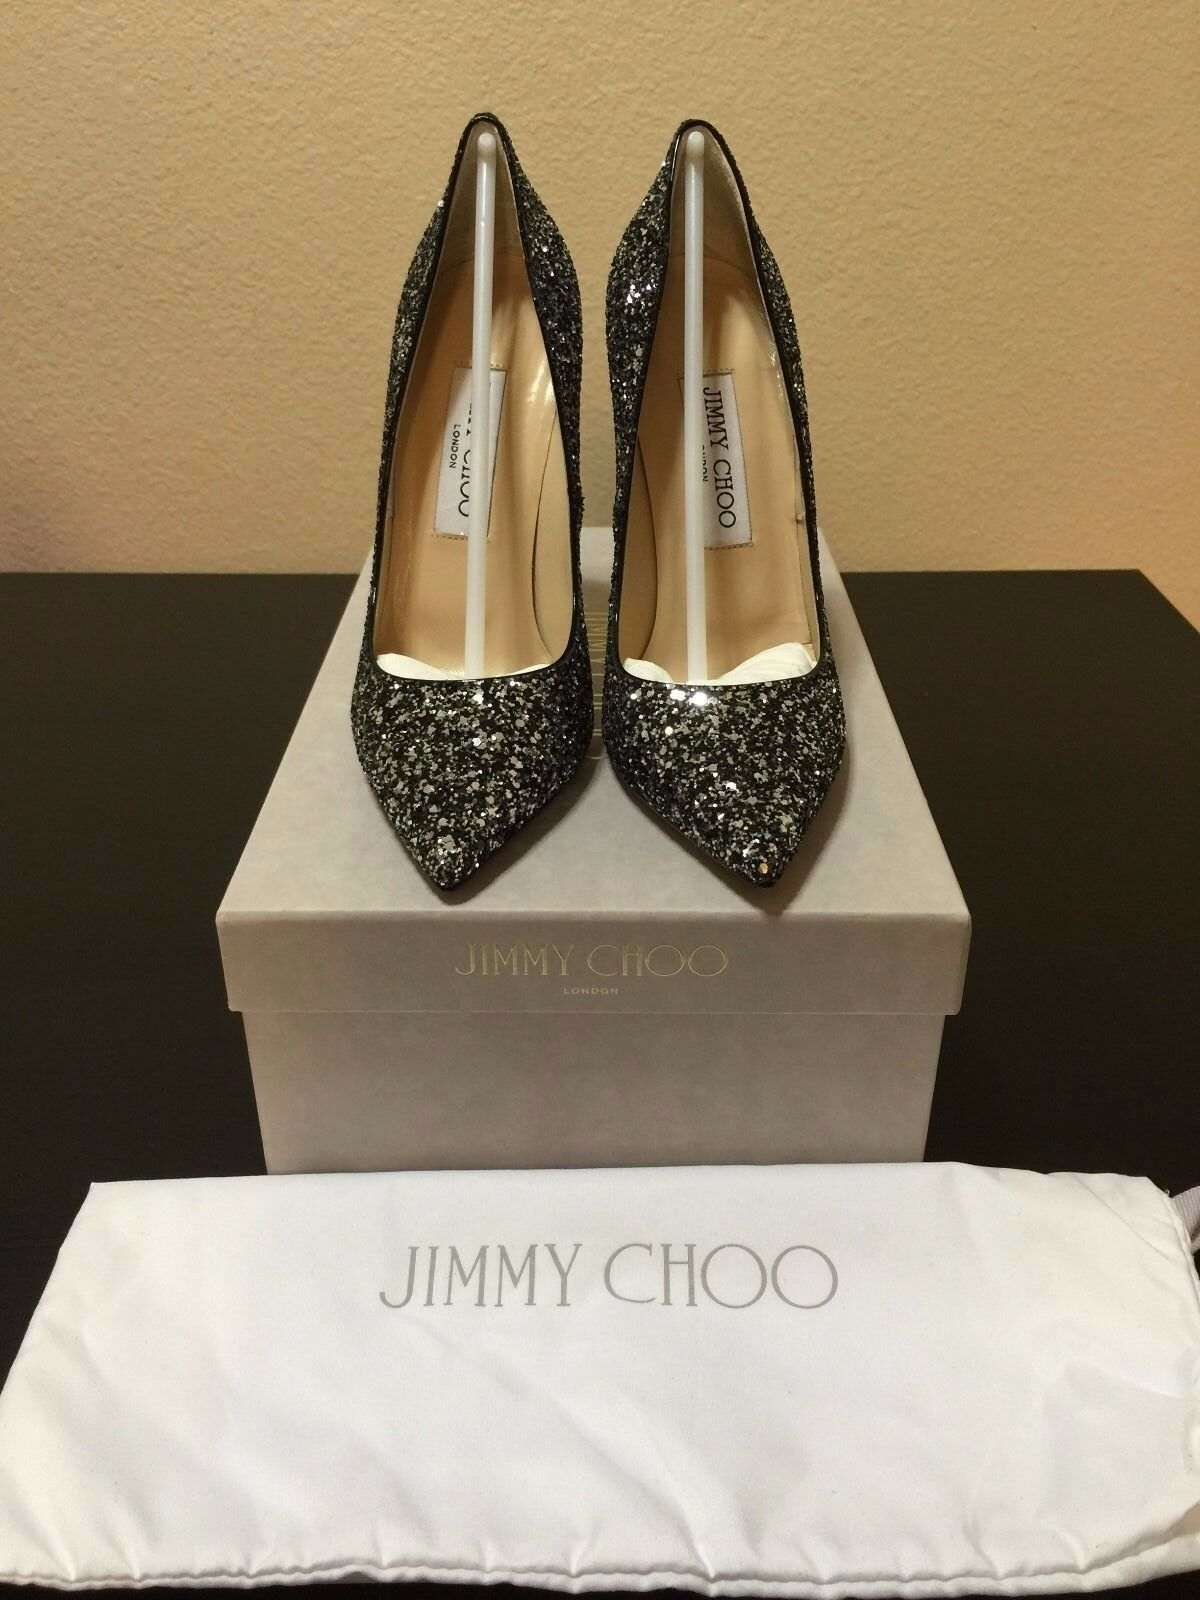 675 Brand New Authentic Jimmy Choo Silver Anouk Glitter Pumps 120mm Size 36.5